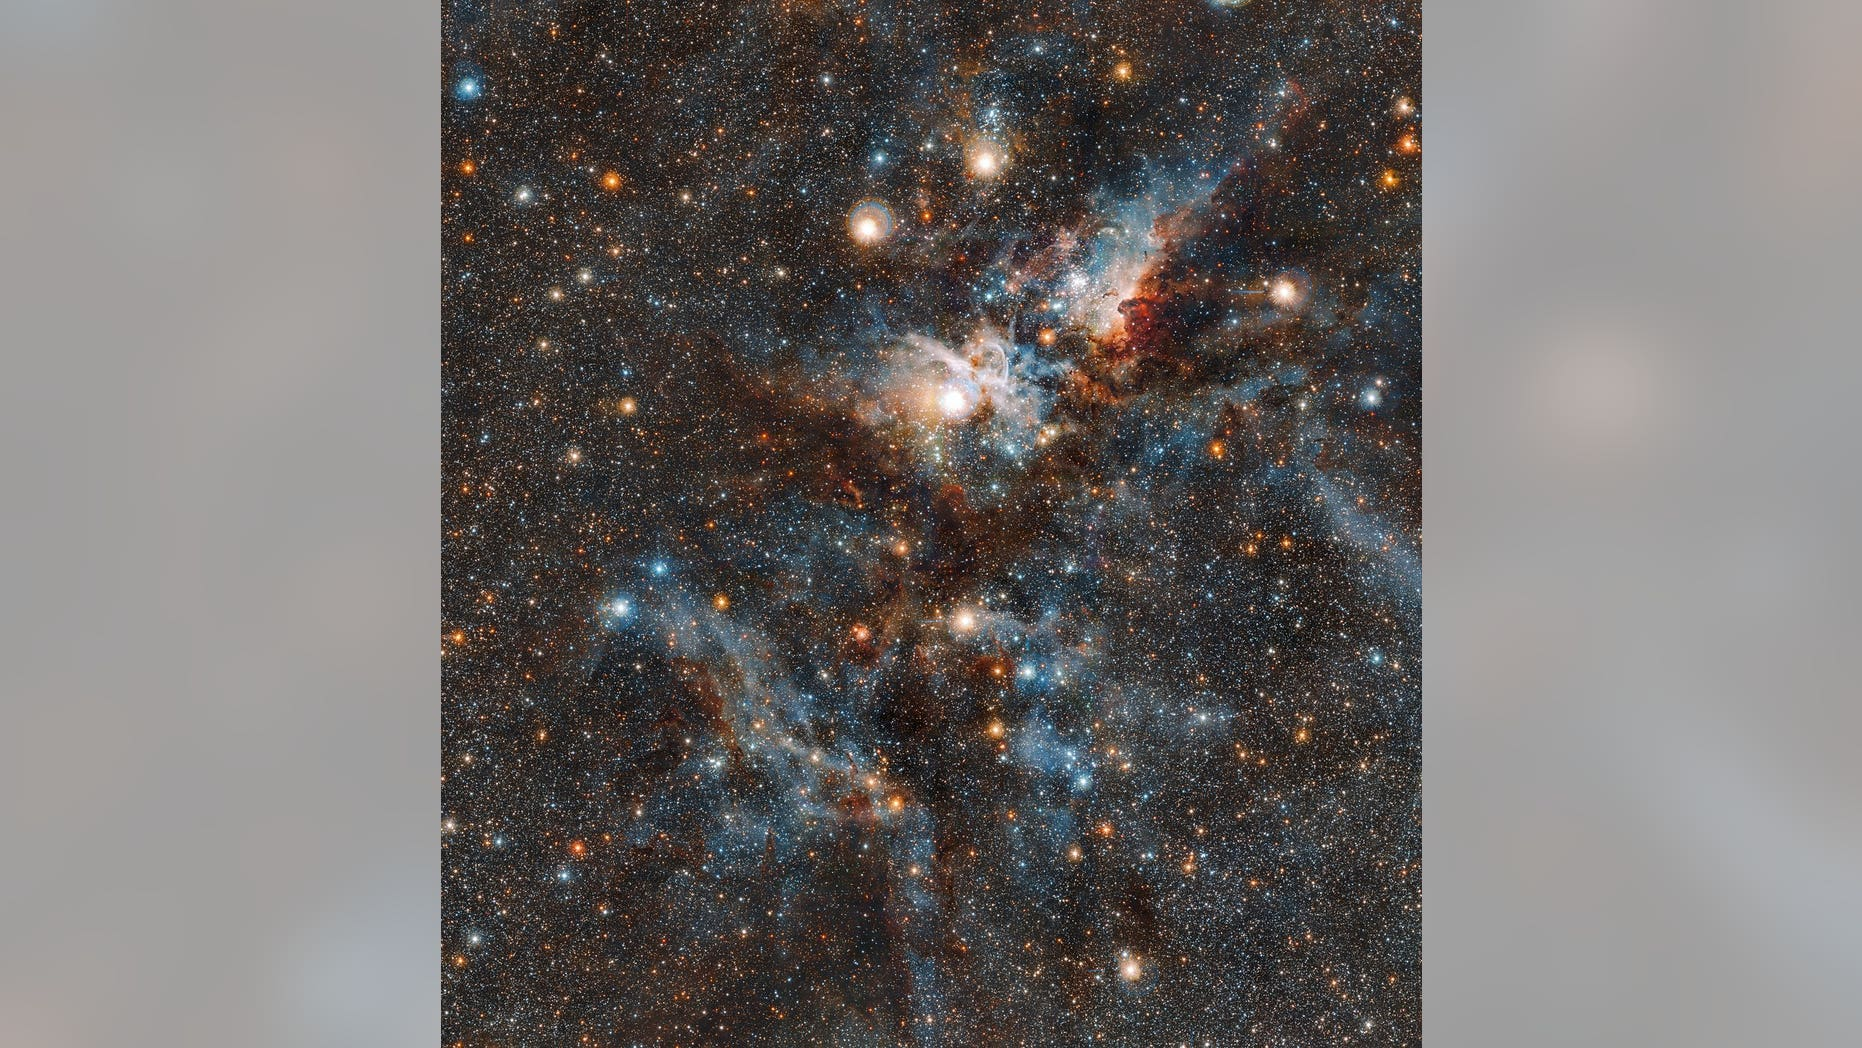 An infrared image of the Carina Nebula taken by the European Southern Observatory's VISTA telescope in Chile, released with a statement Aug. 29 2018.